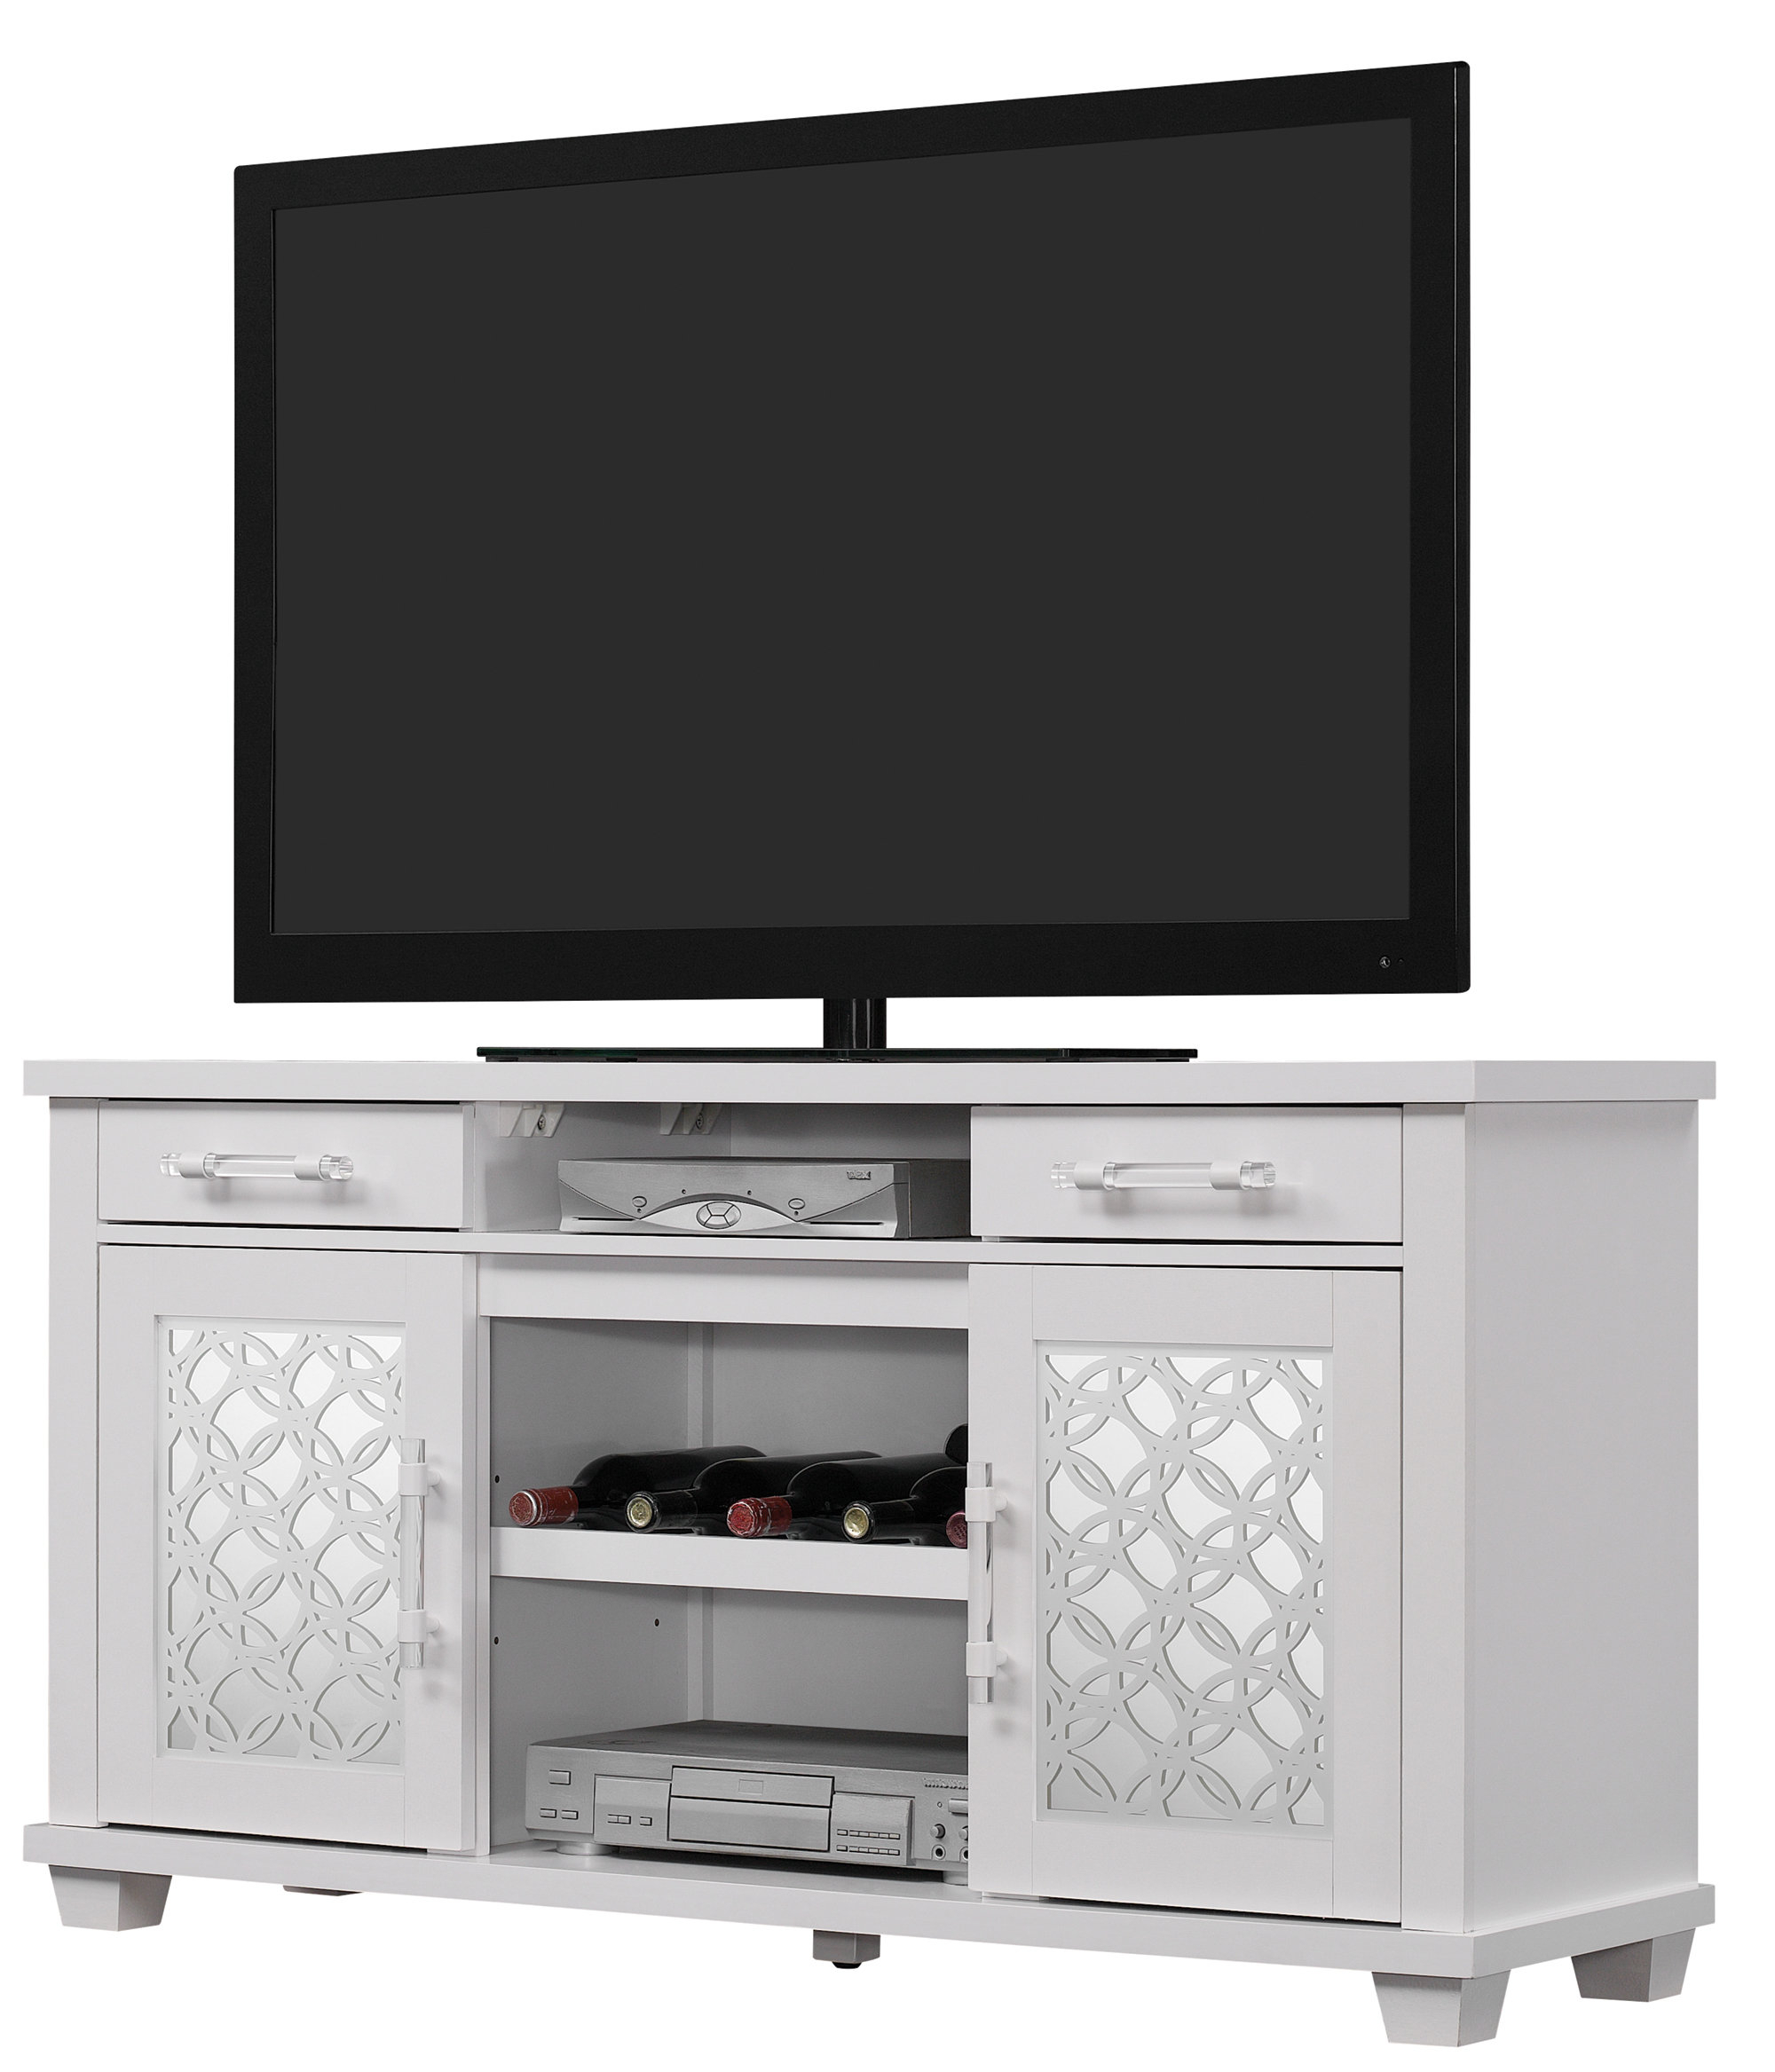 "Wood Credenza Tv Stand | Wayfair For Ericka Tv Stands For Tvs Up To 42"" (View 11 of 20)"